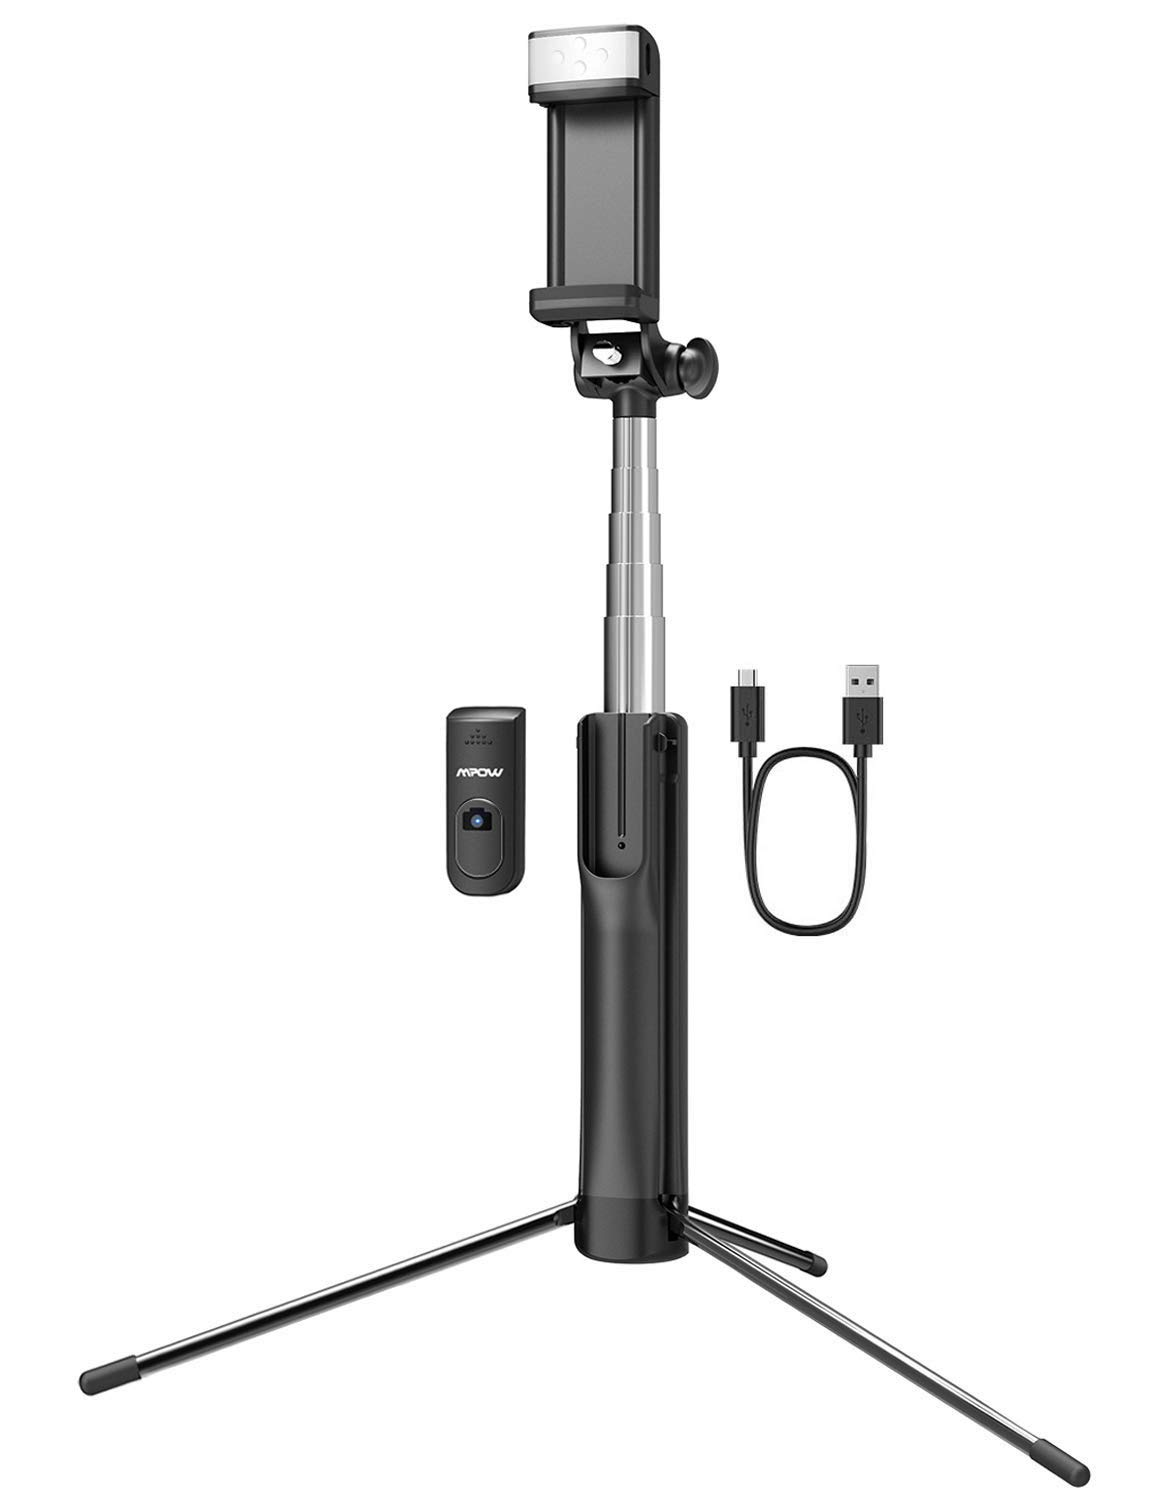 Mpow Selfie Stick Tripod, All in 1 Portable Extendable Selfie Stick with Bluetooth Remote & Fill Light, Compatible iPhone 11/11Pro/Xs max/XS/XR/X/8P/7P, Galaxy S10/S9/S8, Gopro/Small Camera,Black